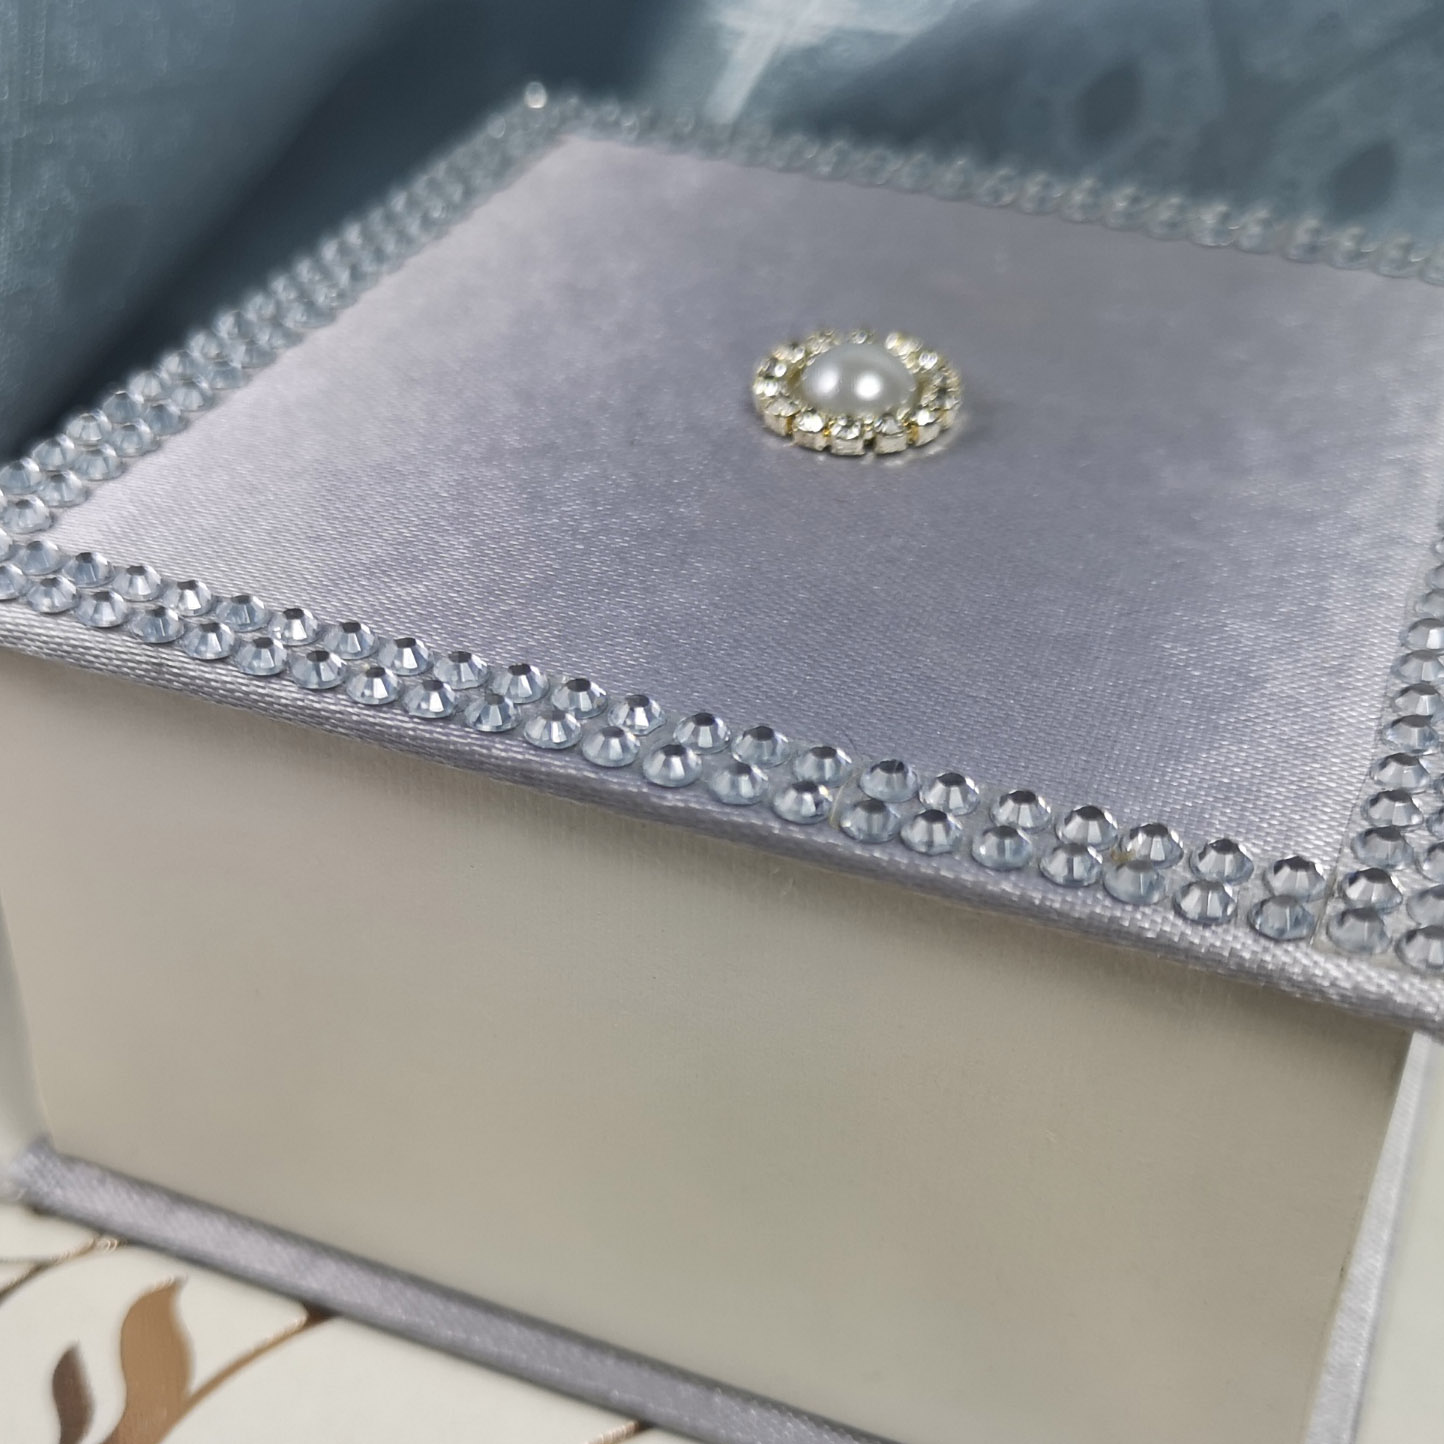 silver favor box with pearl and rhinestones